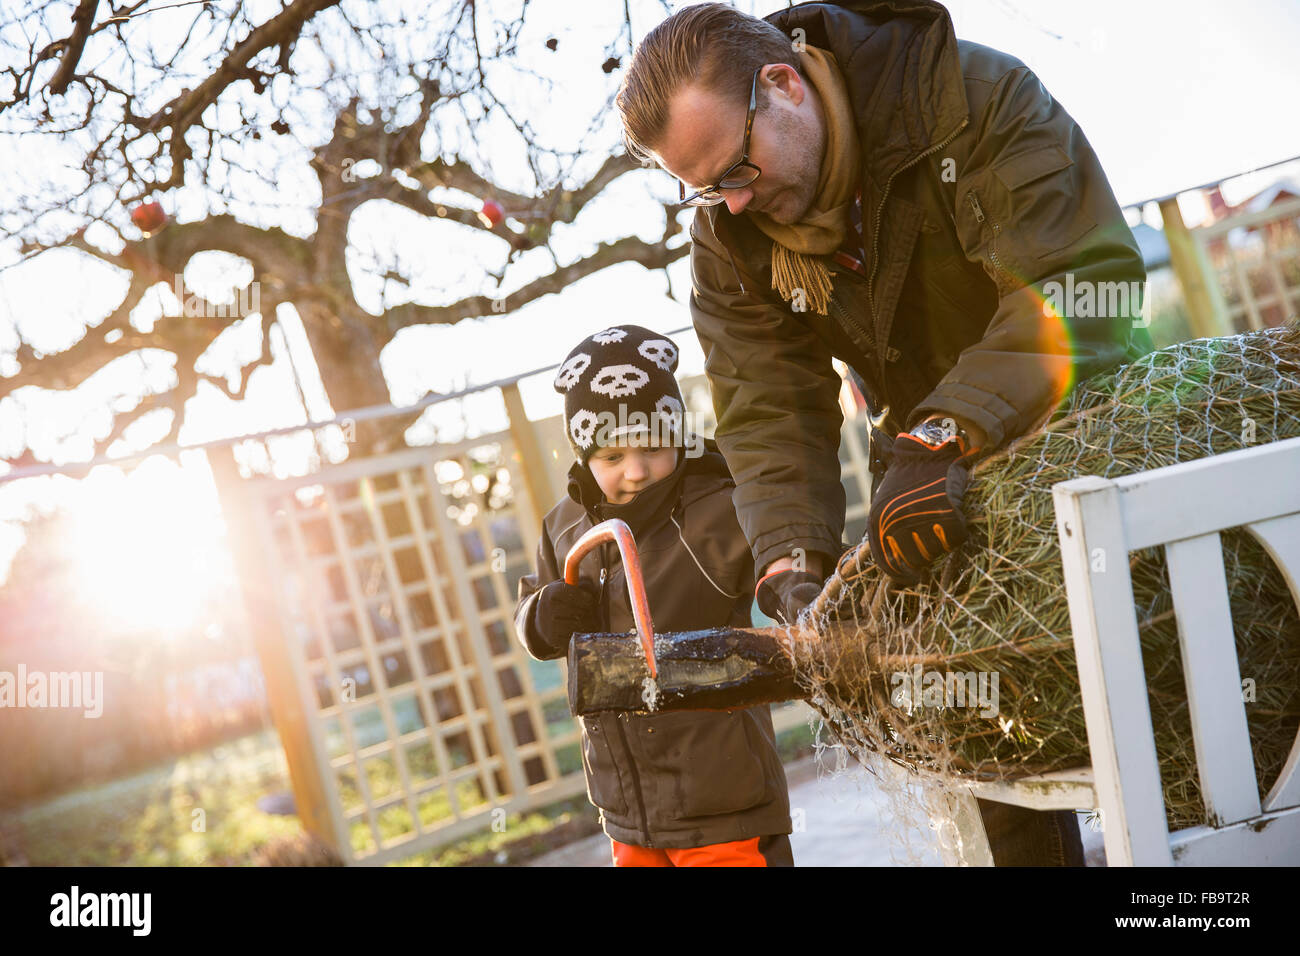 Sweden, Sodermanland, Alvsjo, Father with son (6-7) sawing fir tree on backyard - Stock Image